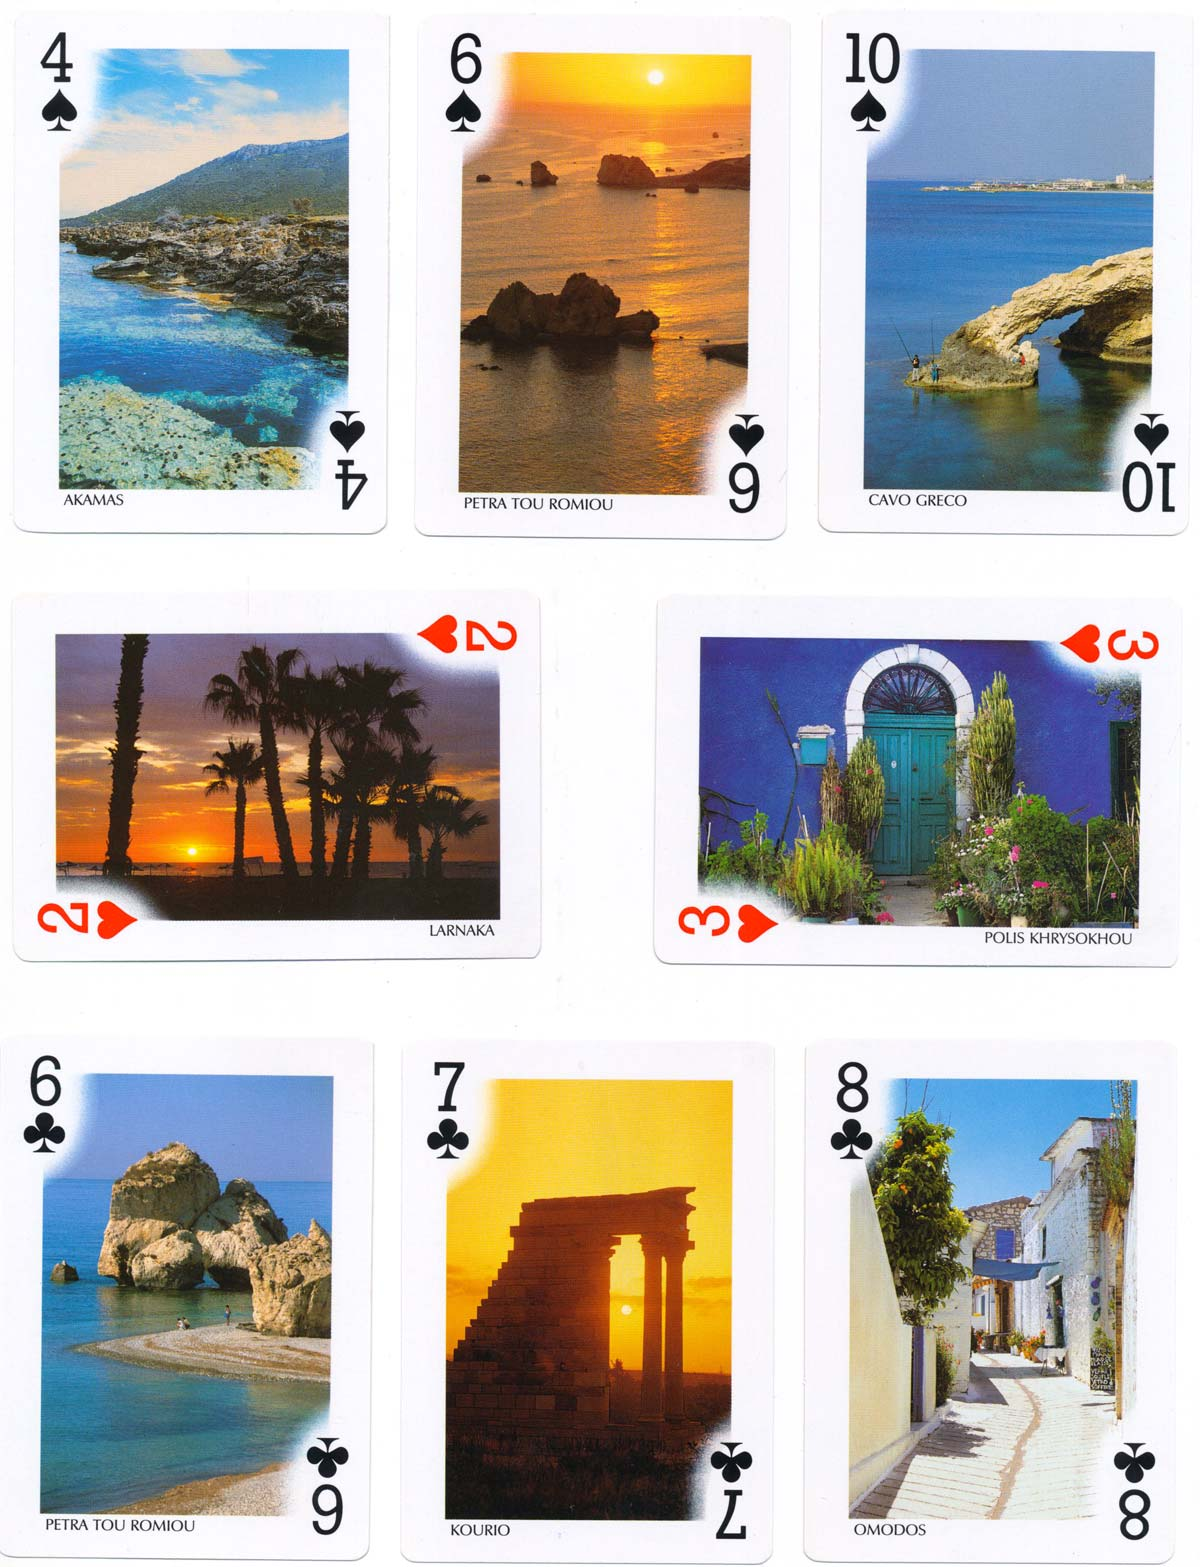 Cyprus Souvenir playing cards published by Editions Michalis Toubis S.A., 1998